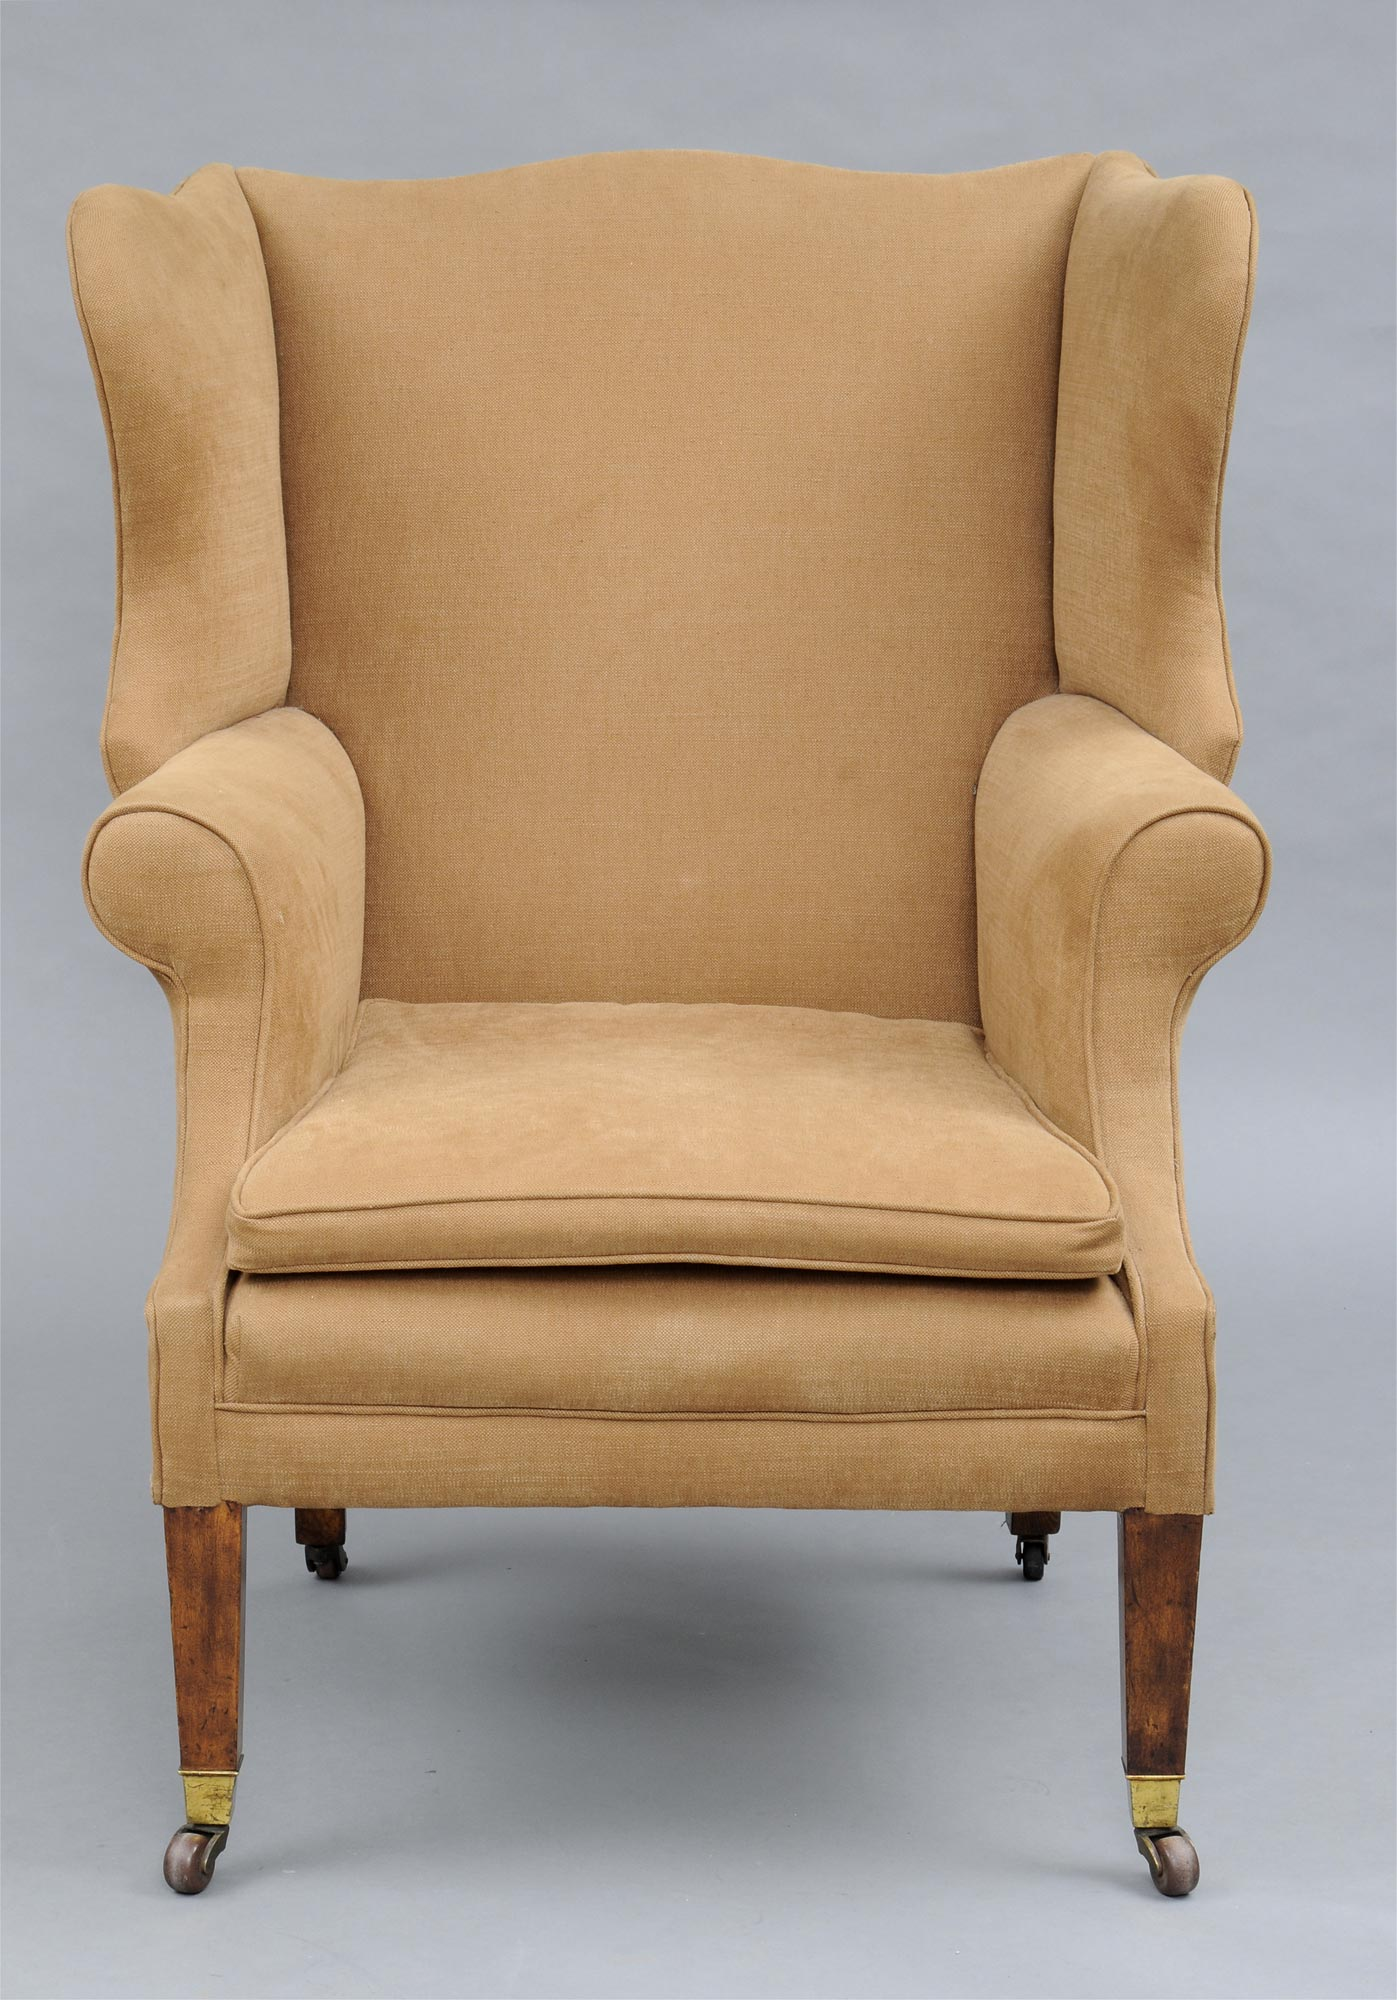 Antique wingback chair styles -  Antique English George Iii Style Mahogany Ash Wing Chair 19th Century